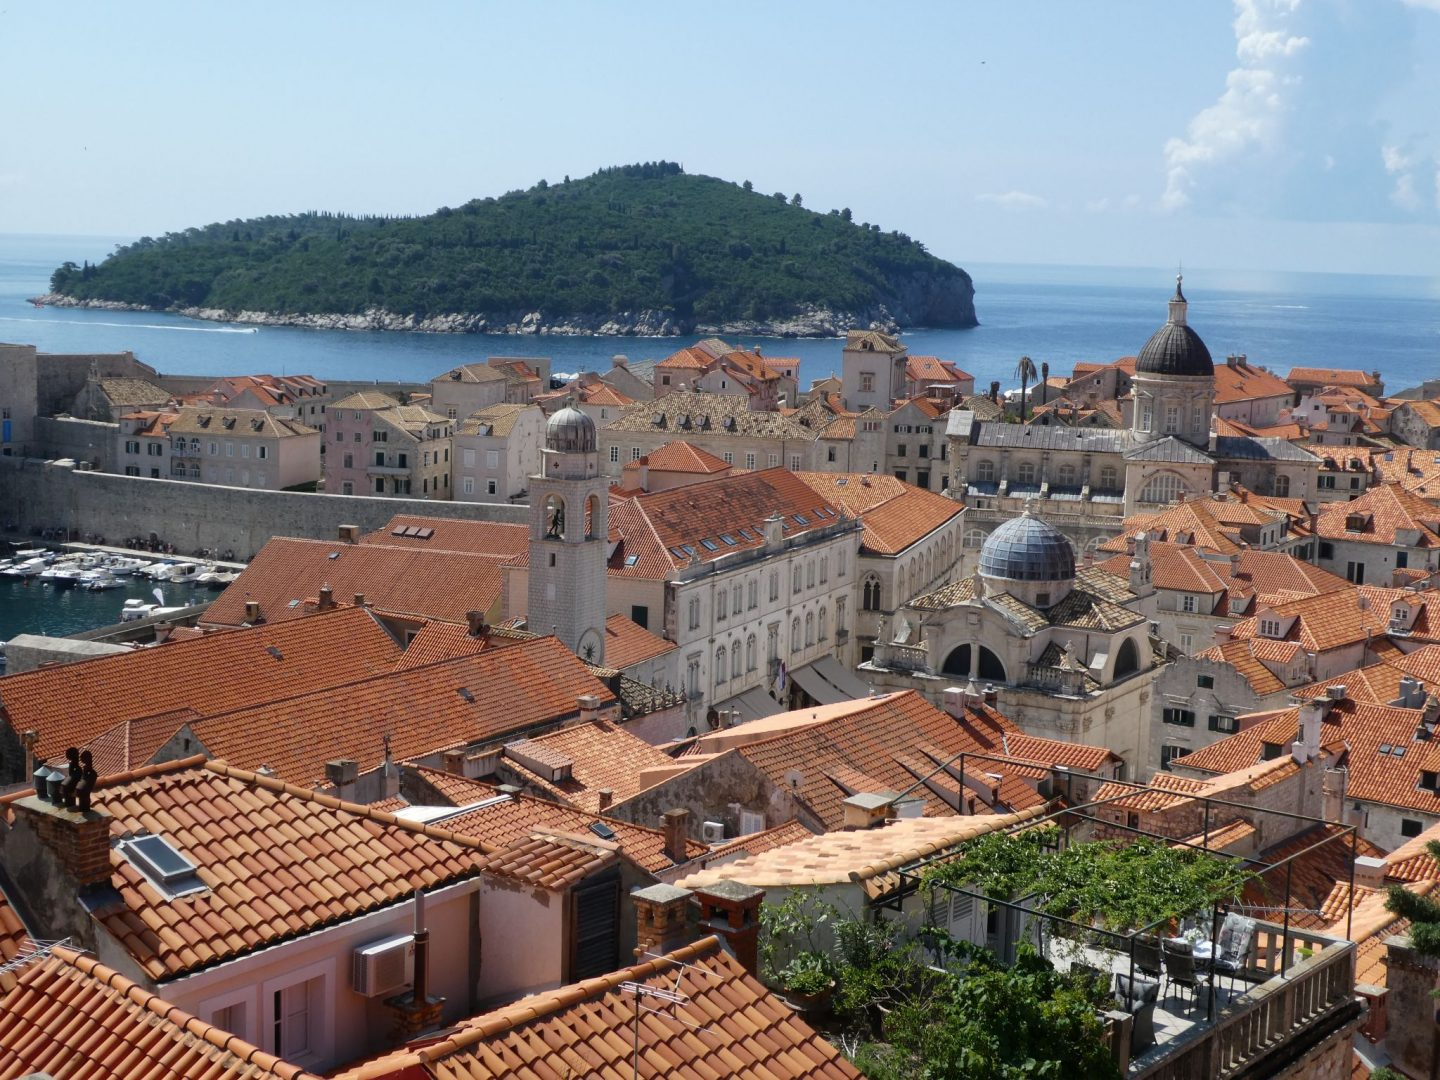 Dubrovnik (16 to 18 June 2018)